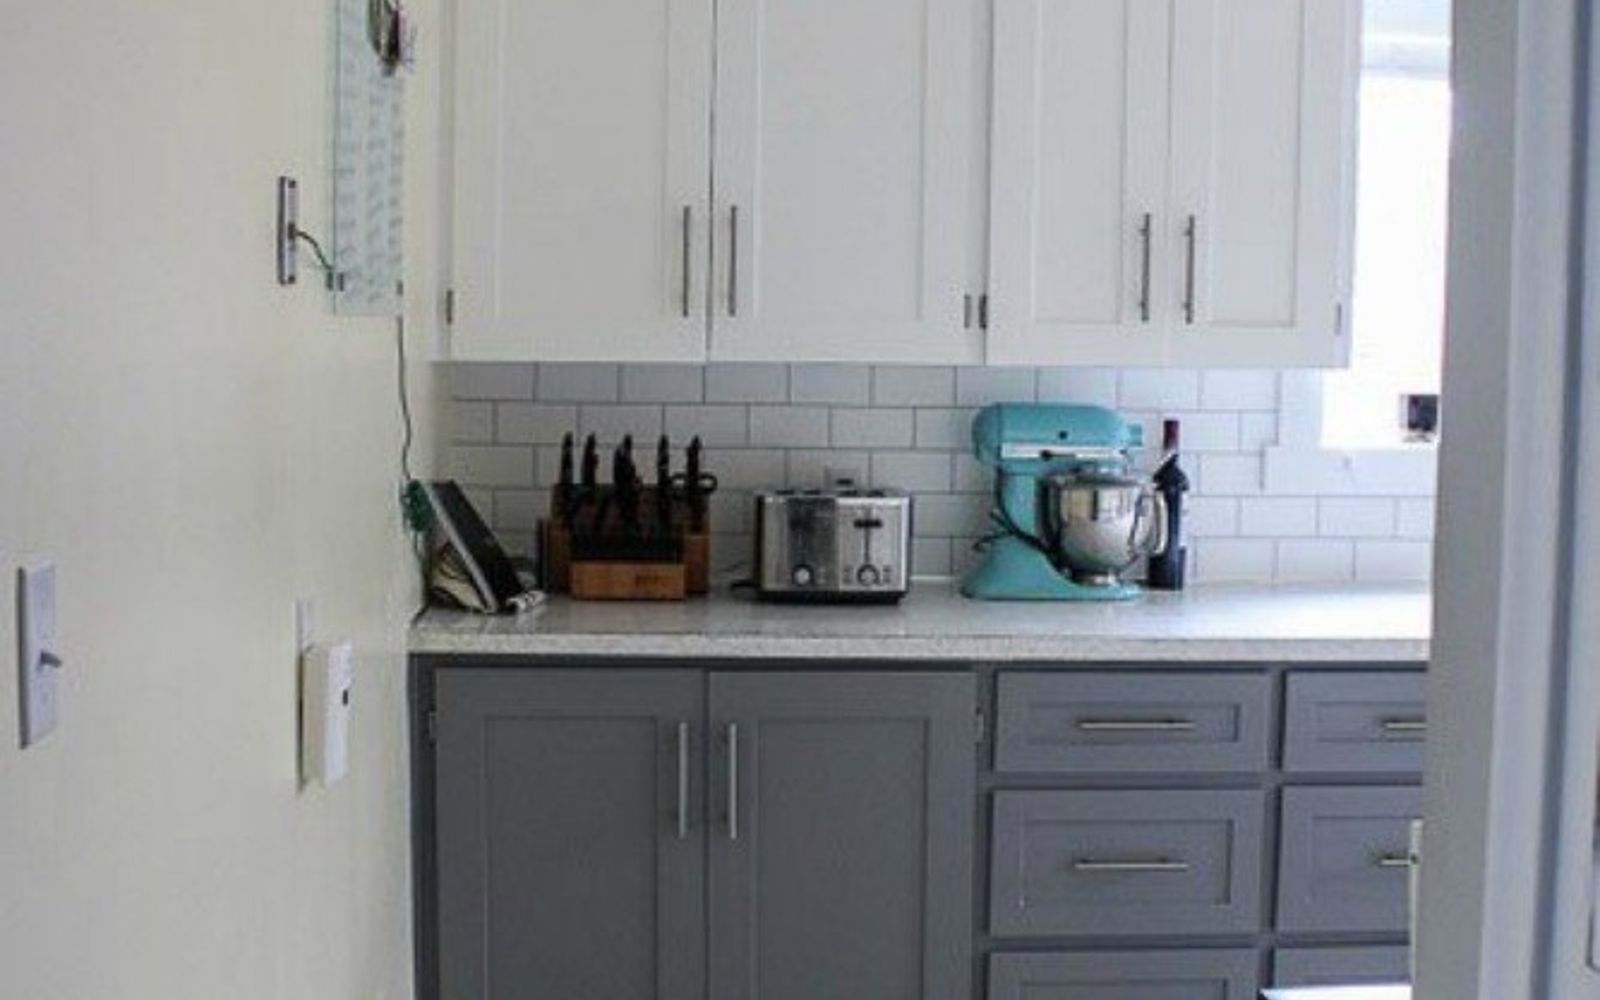 s transform your kitchen cabinets without paint 11 ideas , kitchen cabinets, kitchen design, Add some trim for an easy upgrade